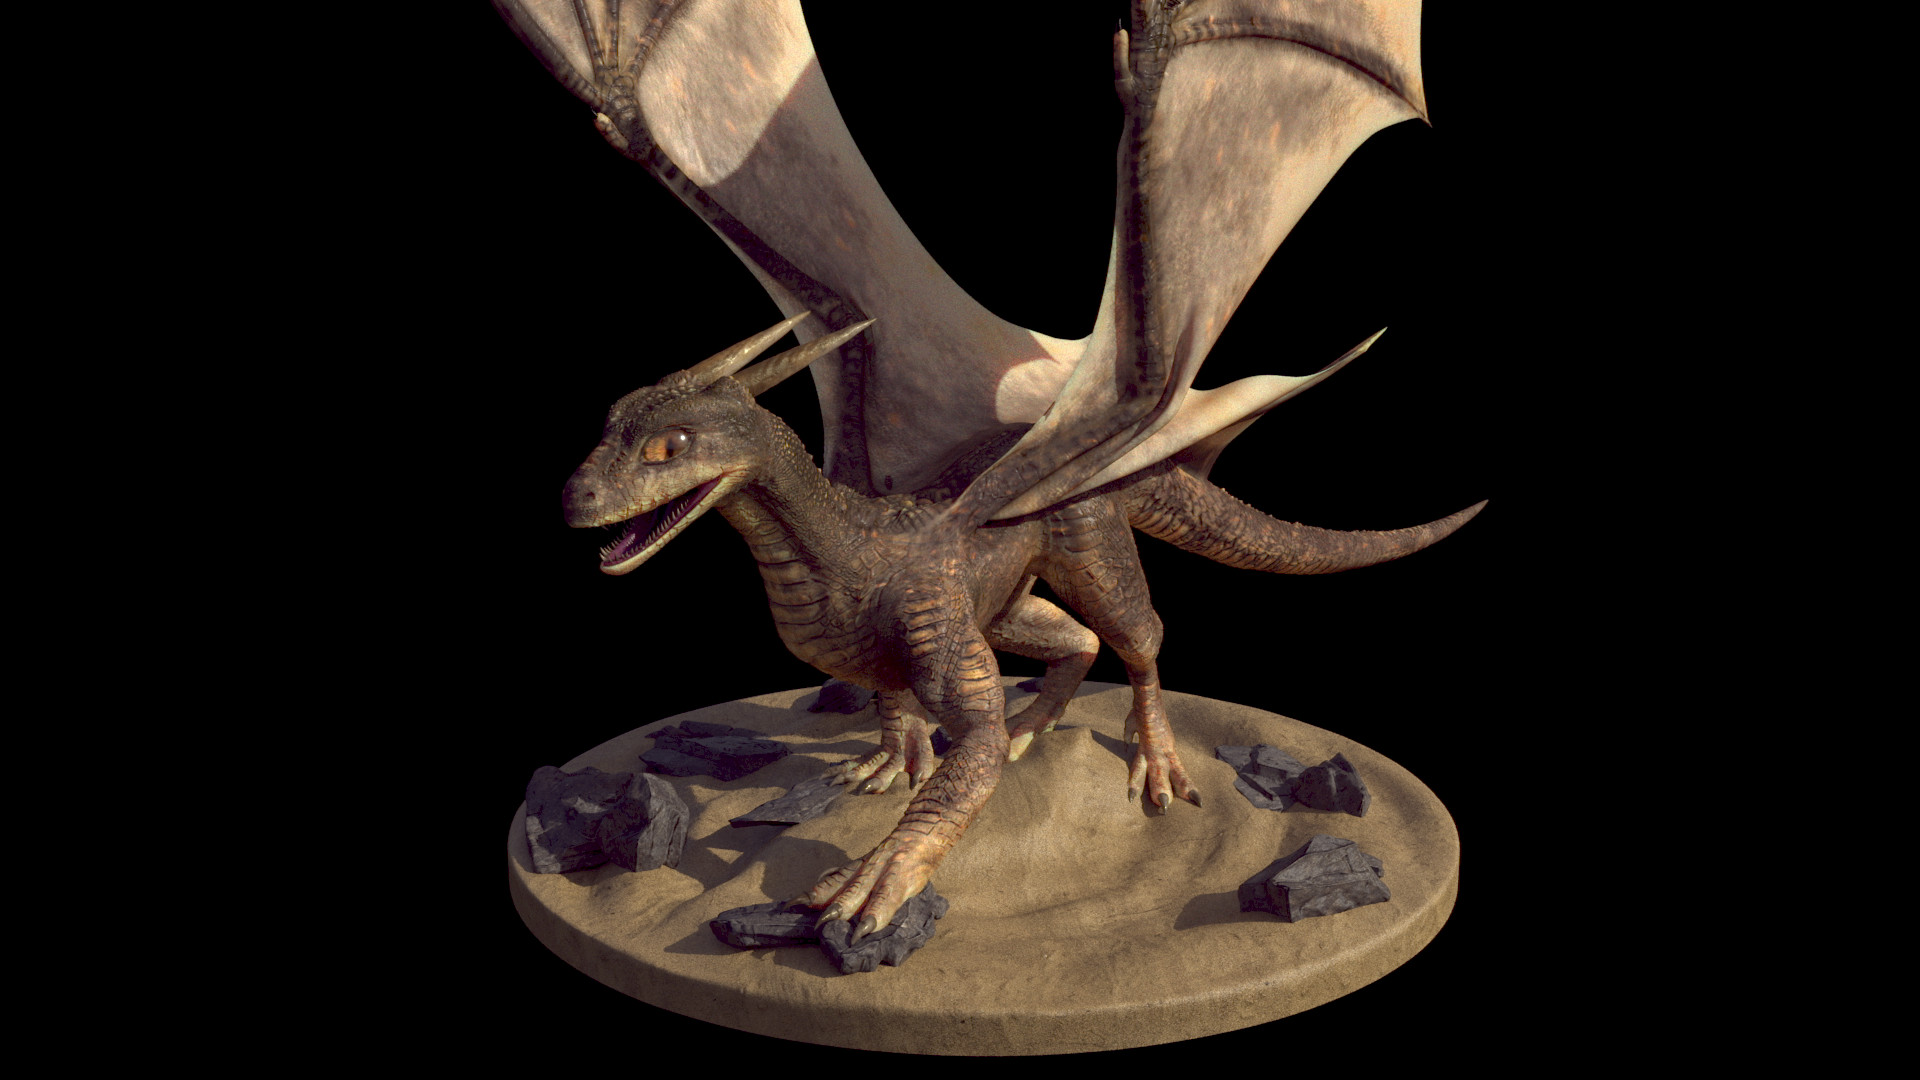 Ilai perez dragon render 2 uncompressed 2 collor corrected 00 00 00 00 still001